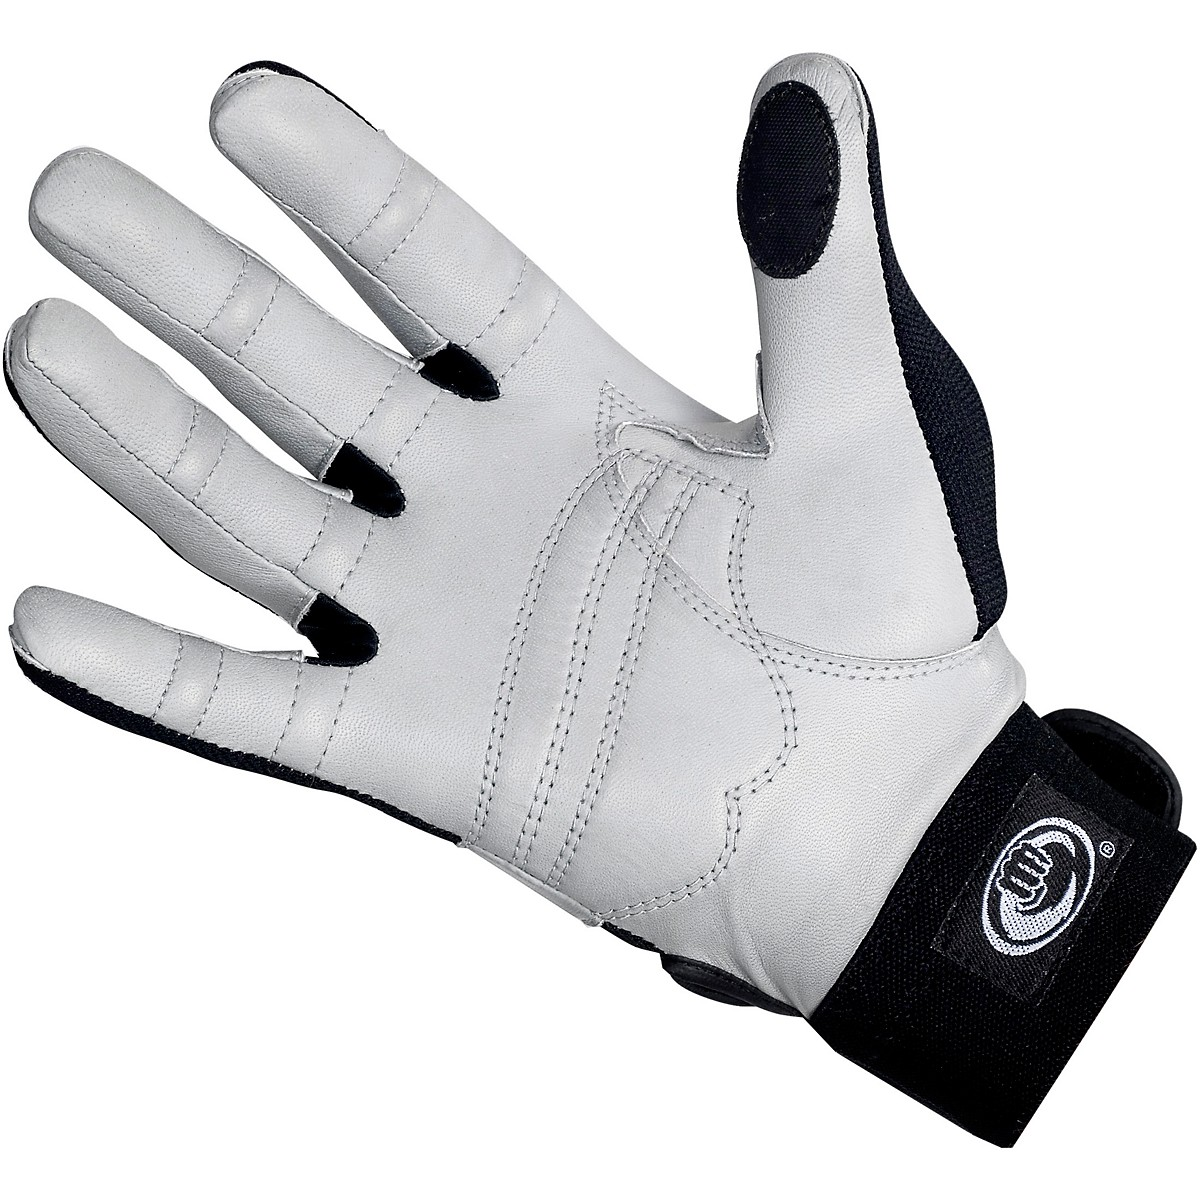 Promark Leather Drum Gloves